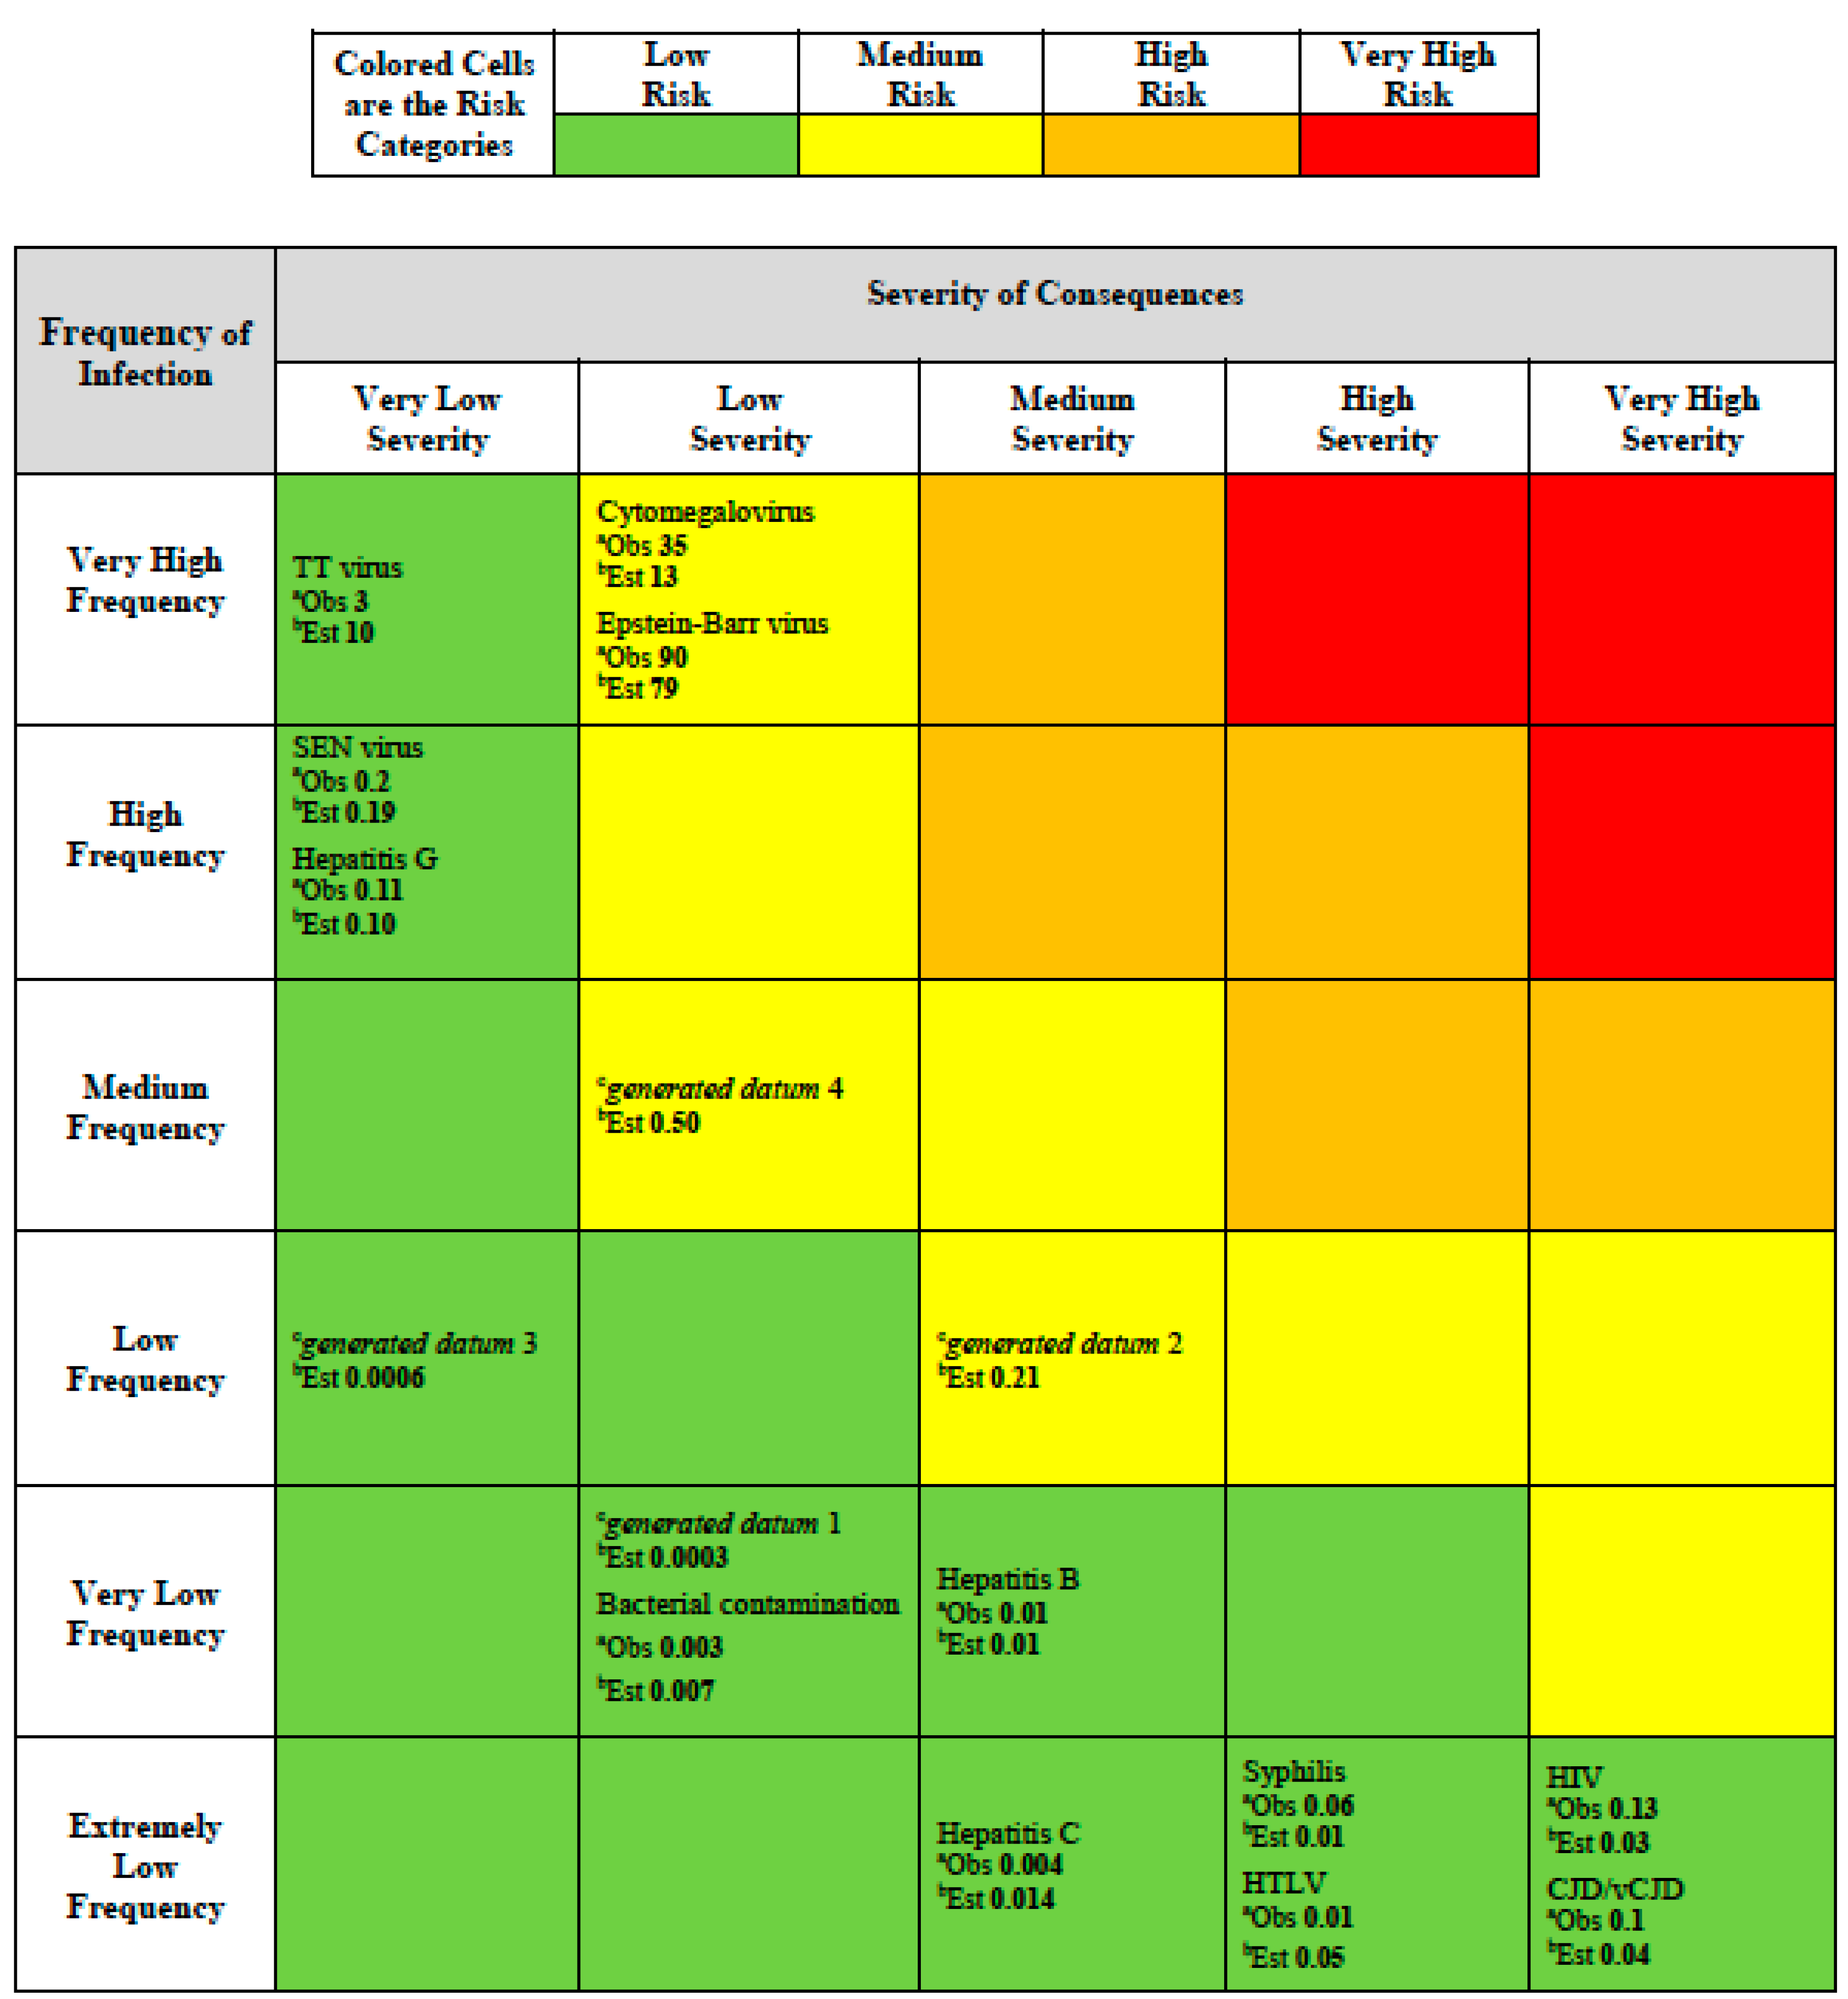 Ijerph Free Full Text Can Public Health Risk Assessment Using Risk Matrices Be Misleading Html A risk matrix is a matrix that is used during risk assessment to define the level of risk by considering the category of probability or likelihood against the category of consequence severity. can public health risk assessment using